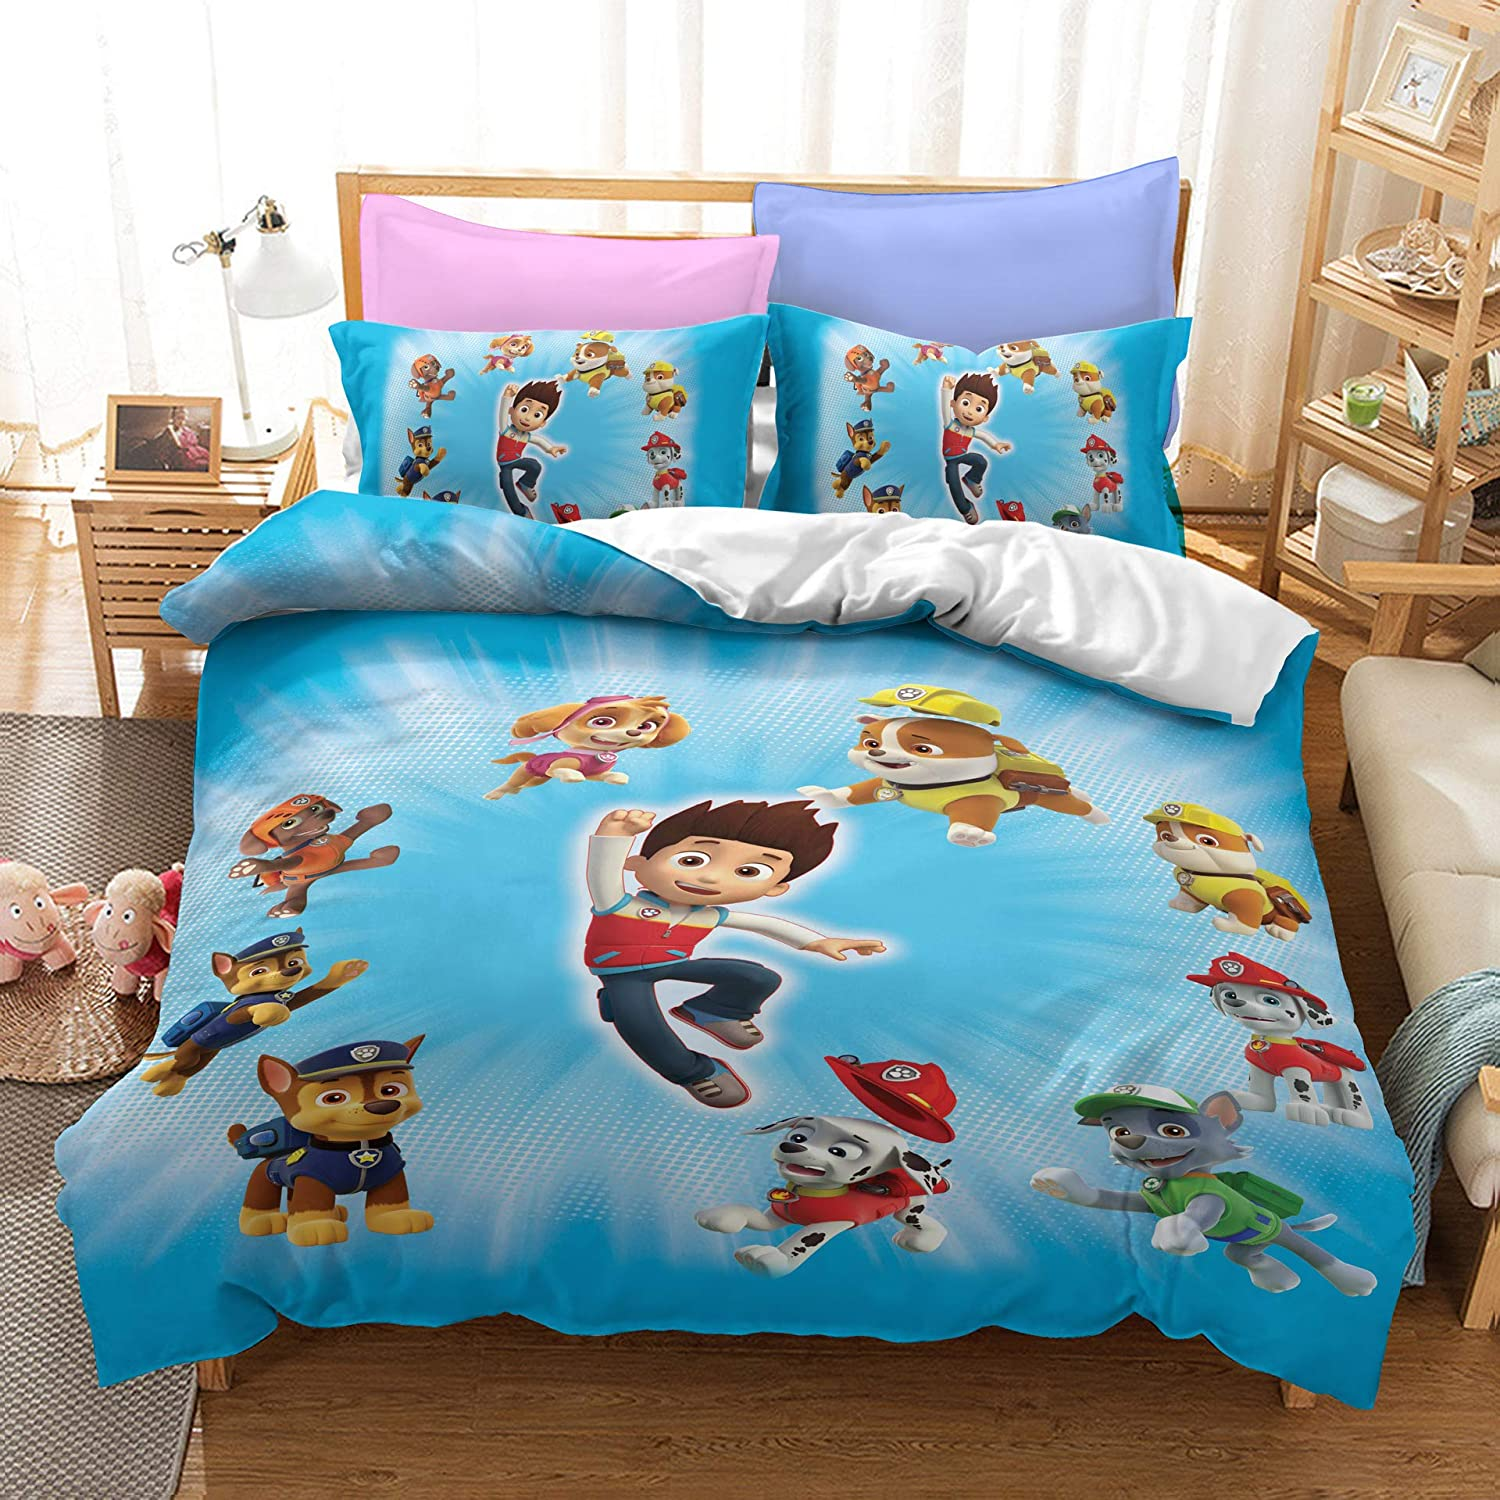 Butalways Kids Bedding Duvet Cover Set PAW Patrol Cartoon for Boys Girls Teens 3D Dogs Bed Set 100% Cotton 3PCS Twin Full Queen King Home Bedroon Decor